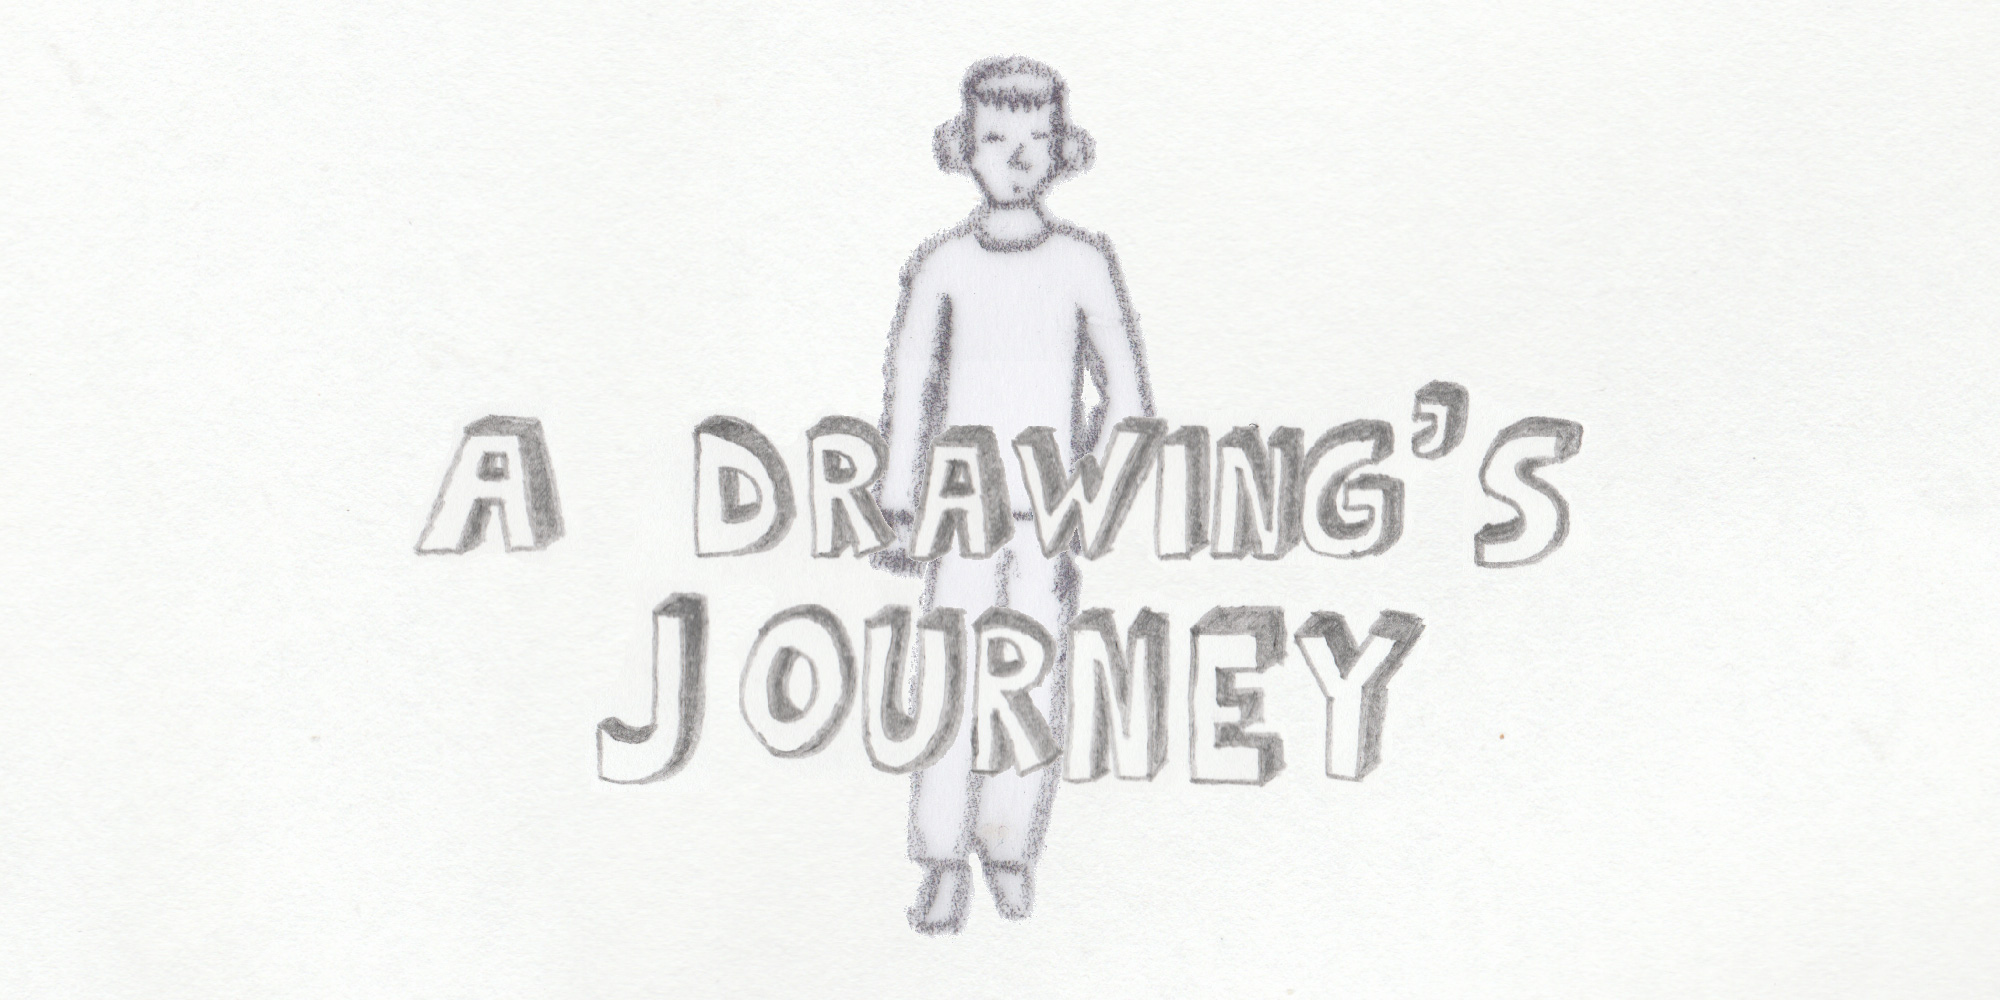 A Drawing S Journey